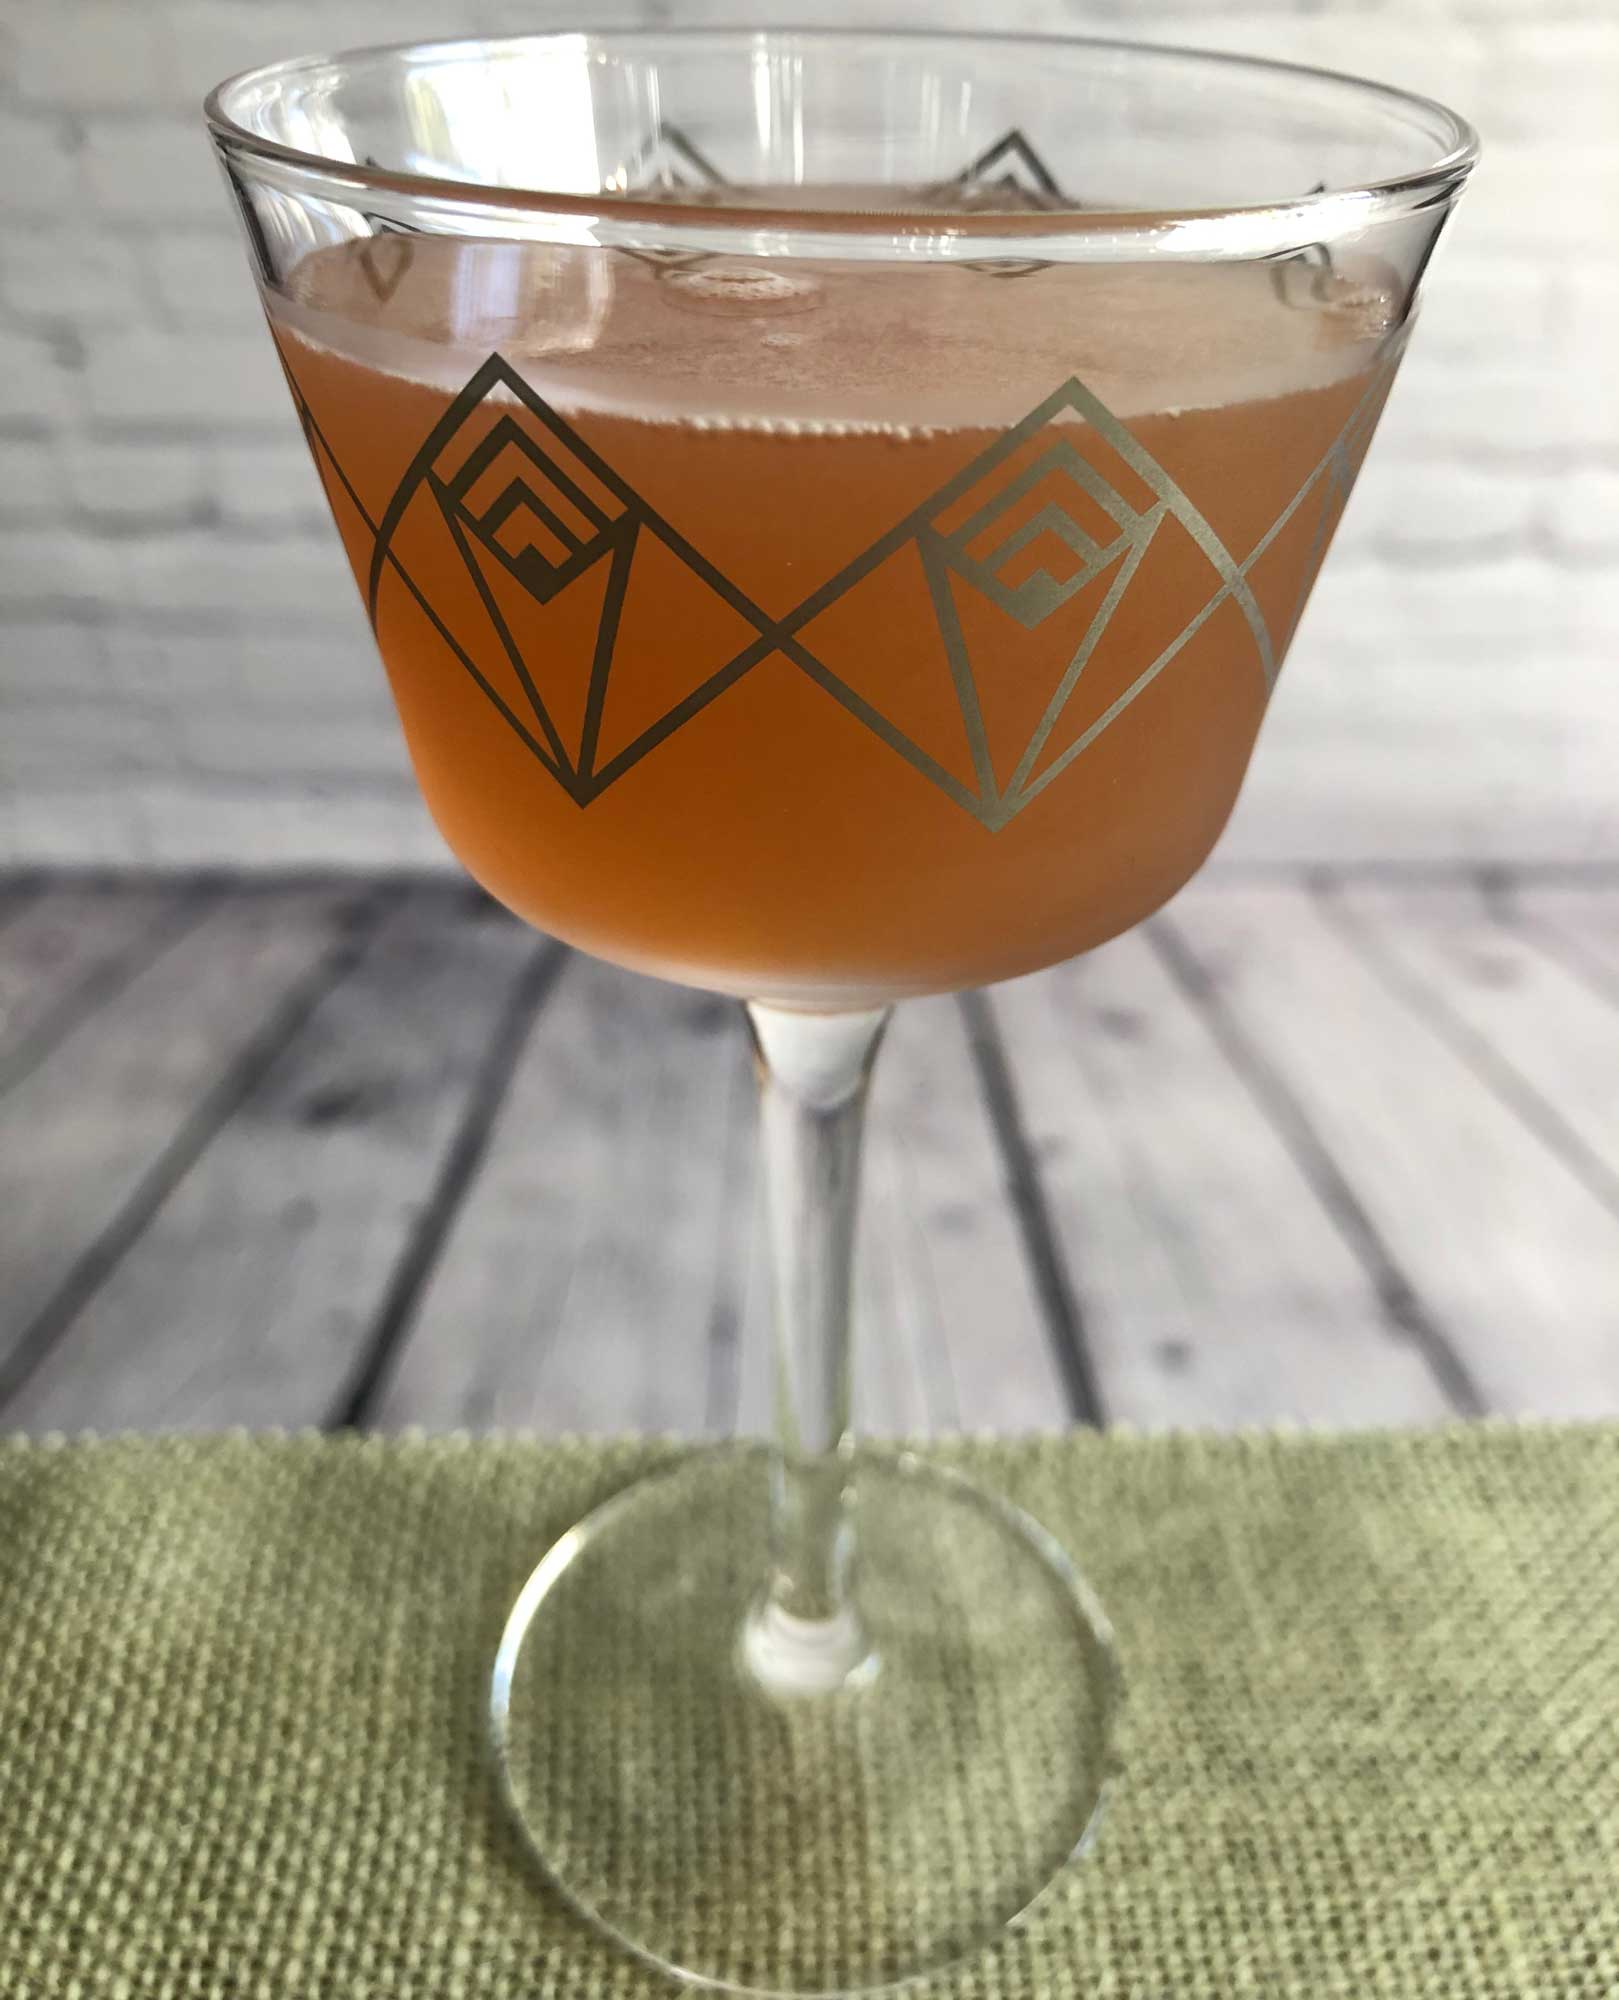 An example of the Demeter, the mixed drink (cocktail), adapted from the Persephone, PDT Cocktail Book, featuring applejack, Dolin Rouge Vermouth de Chambéry, Hayman's Sloe Gin, lemon juice, and simple syrup; photo by Lee Edwards